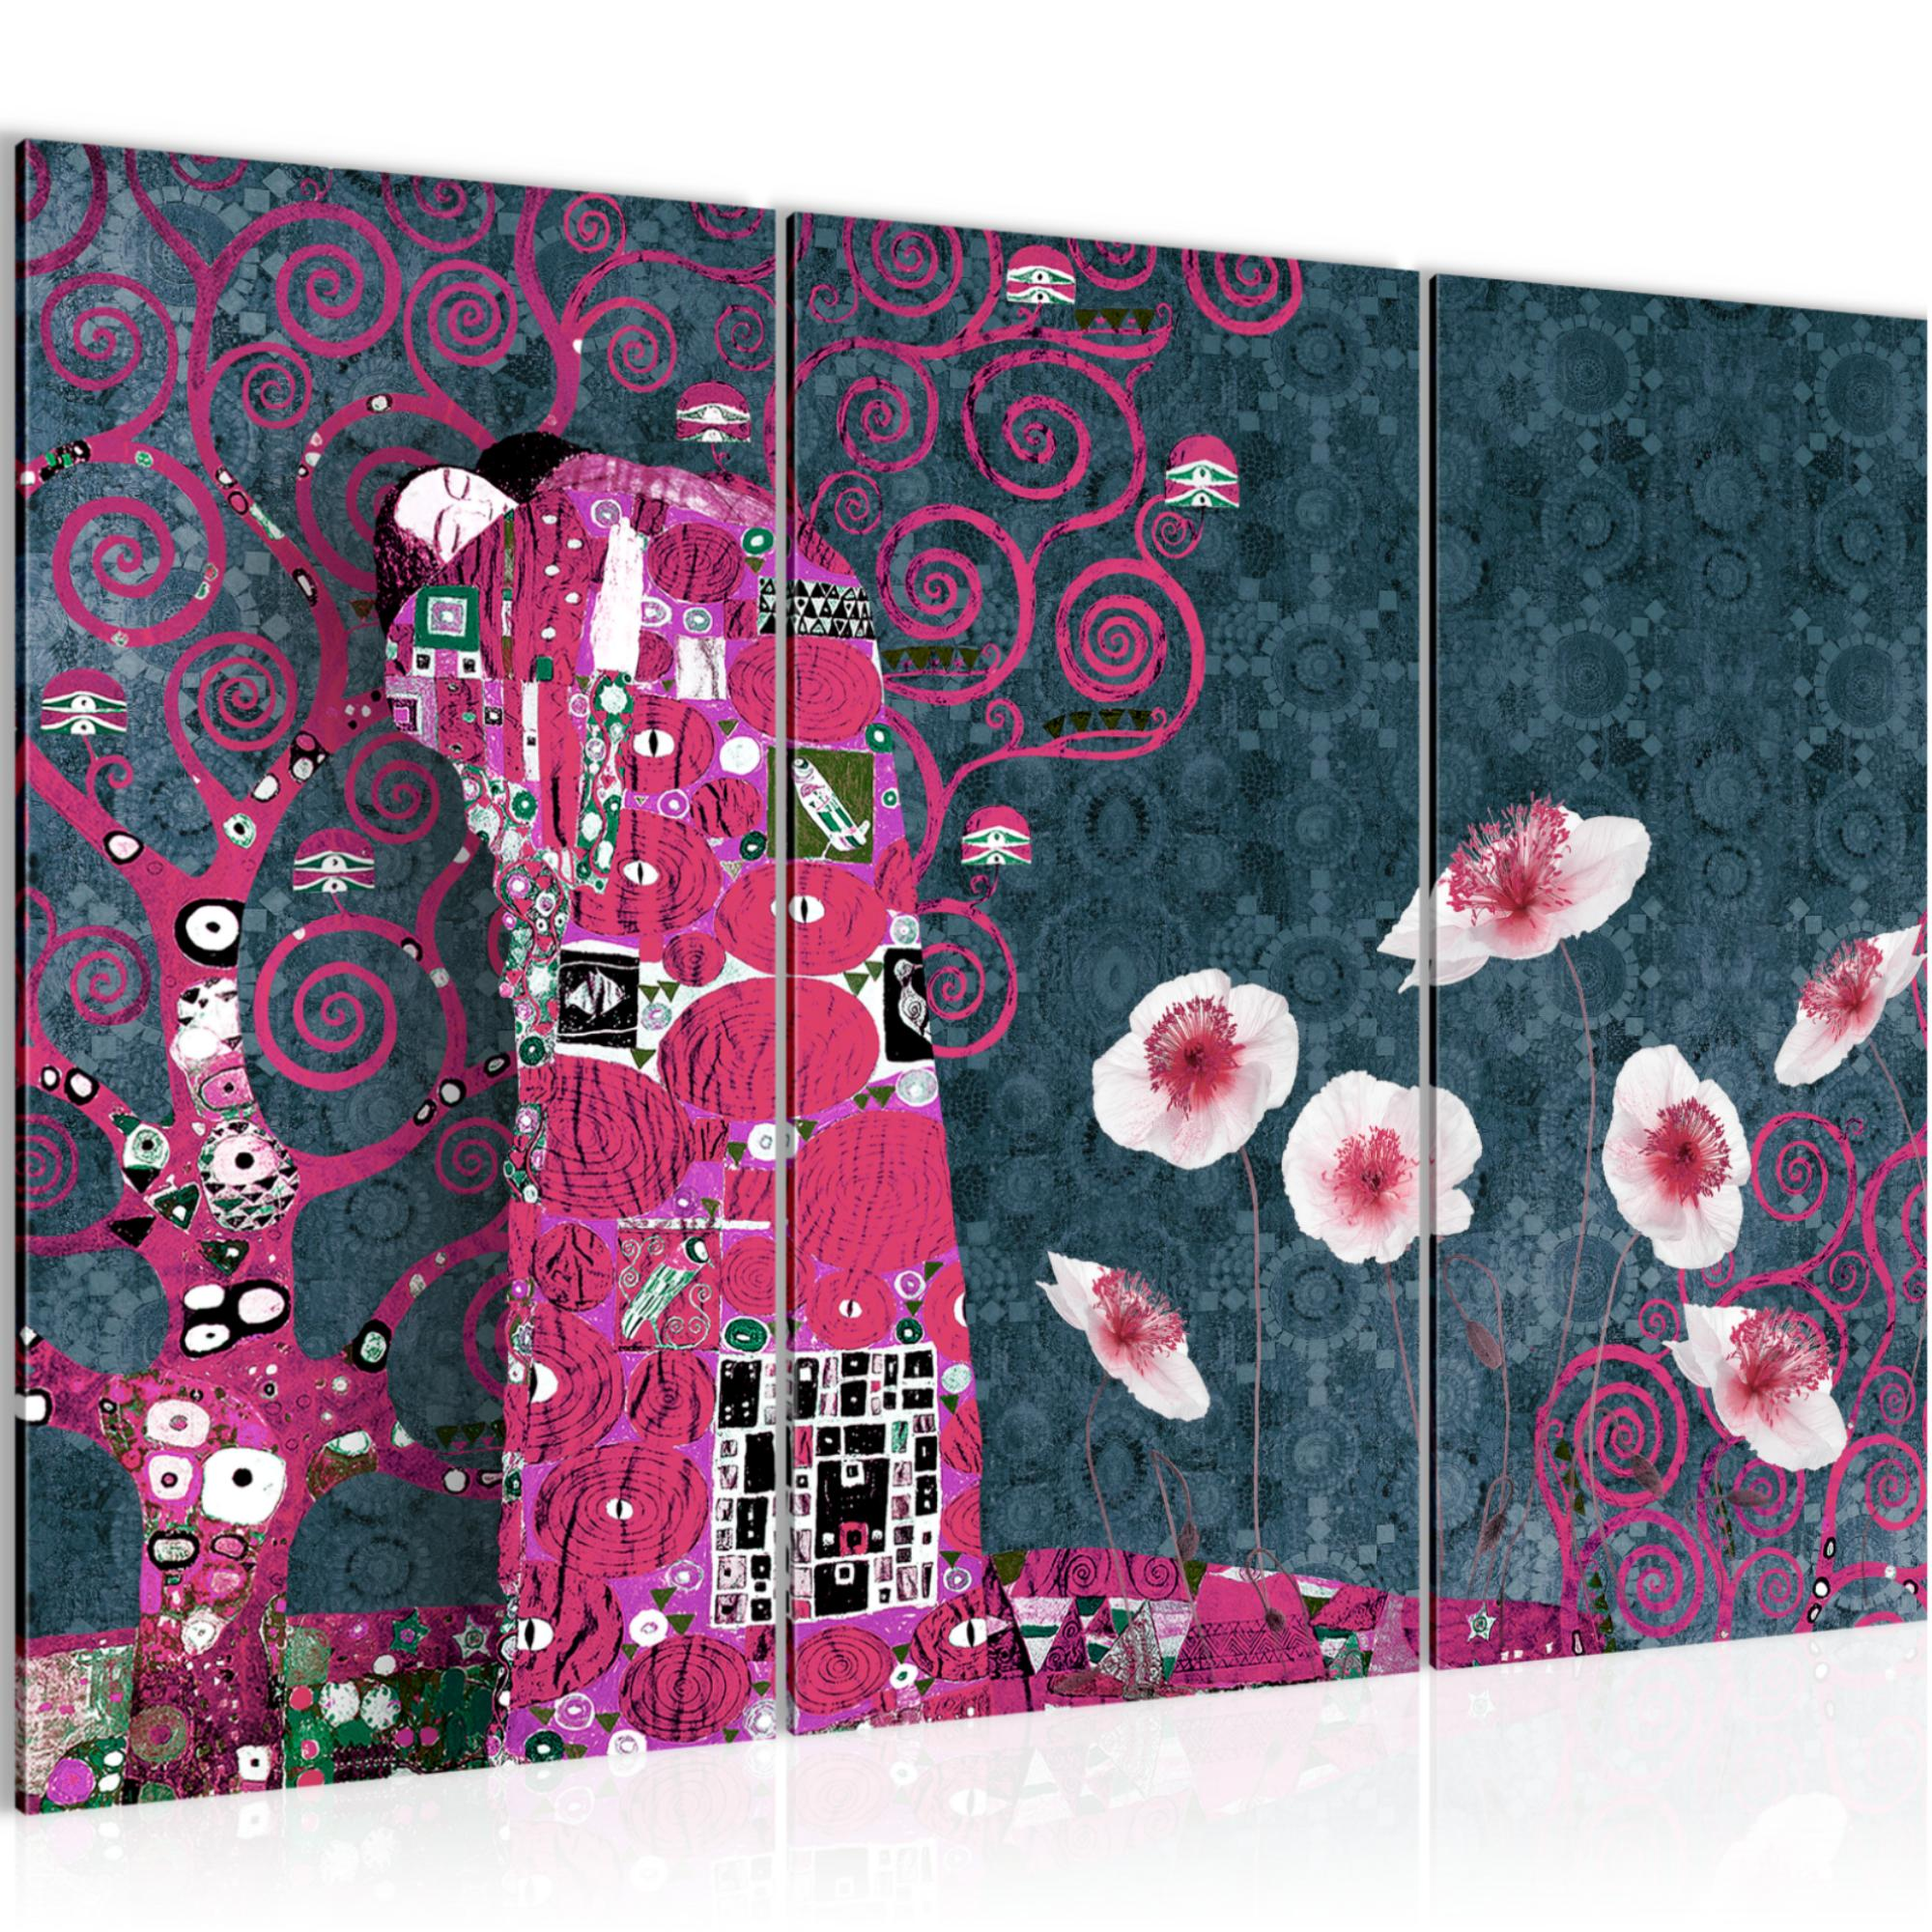 gustav klimt der kuss bild kunstdruck auf vlies leinwand xxl dekoration 021531p. Black Bedroom Furniture Sets. Home Design Ideas